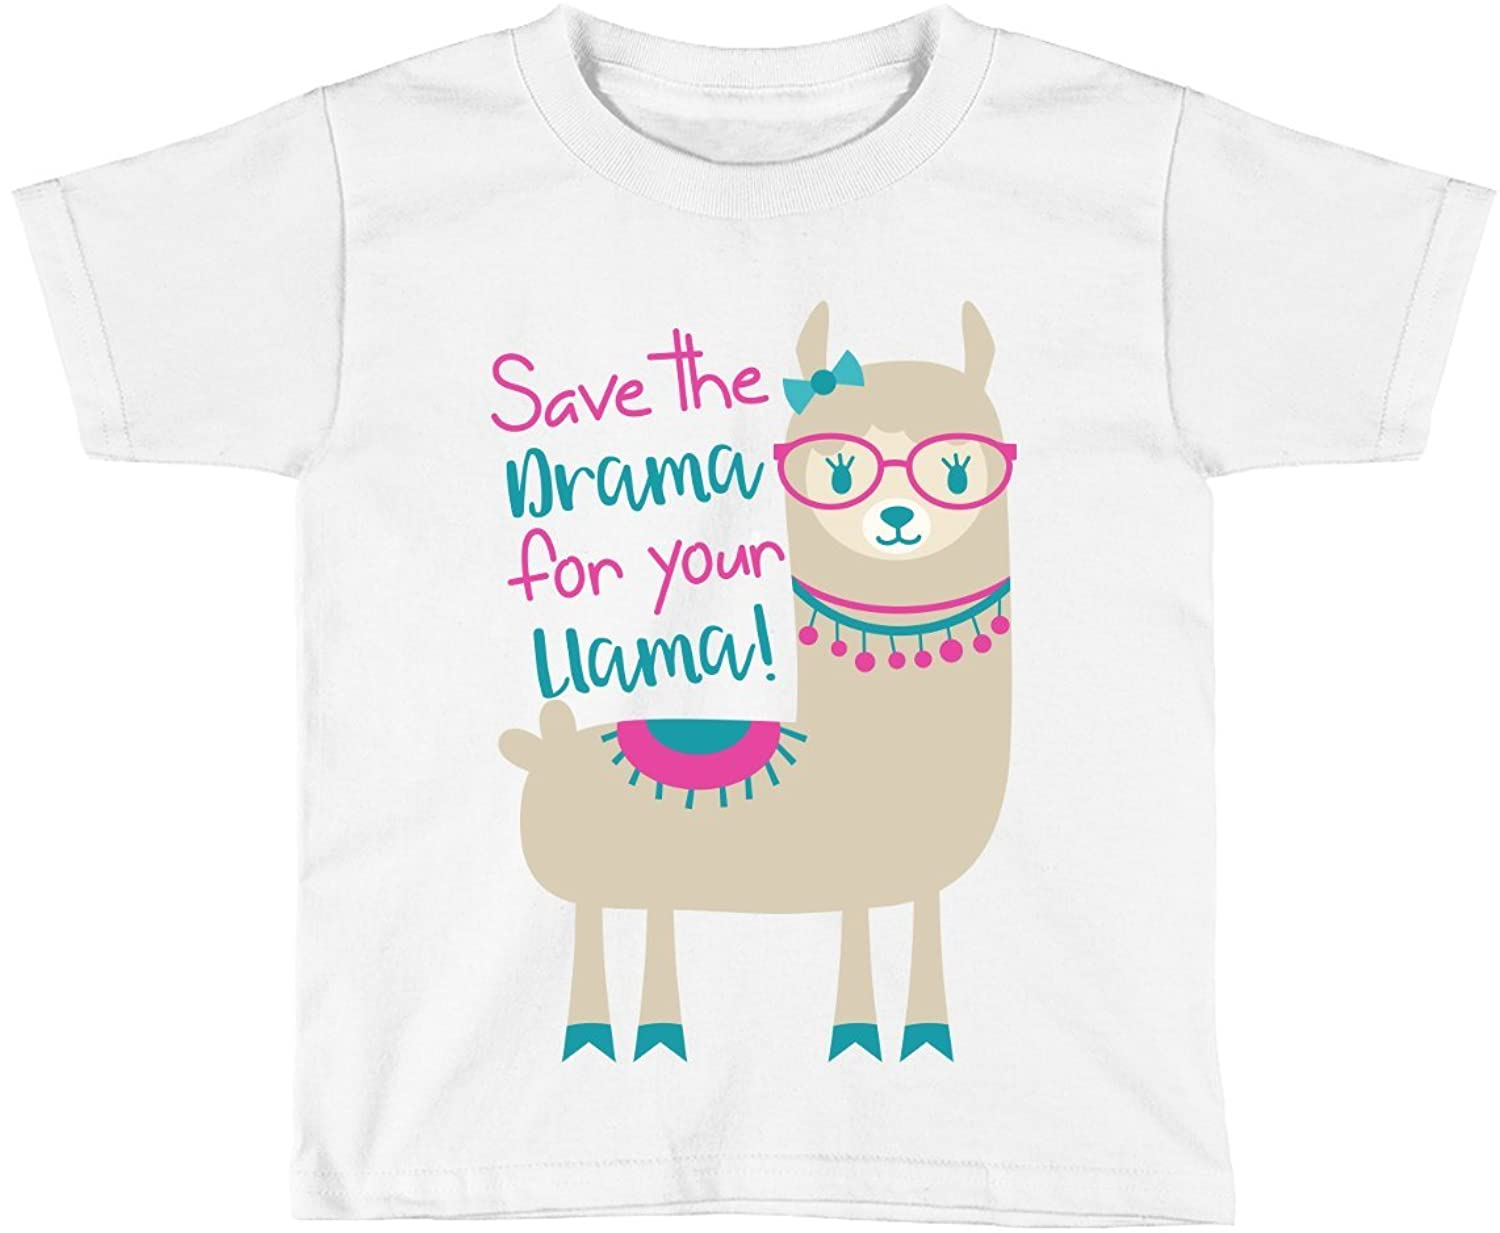 Blu Magnolia Co Baby Girls' Llama Outfit Shirt   Save The Drama for Your Llama